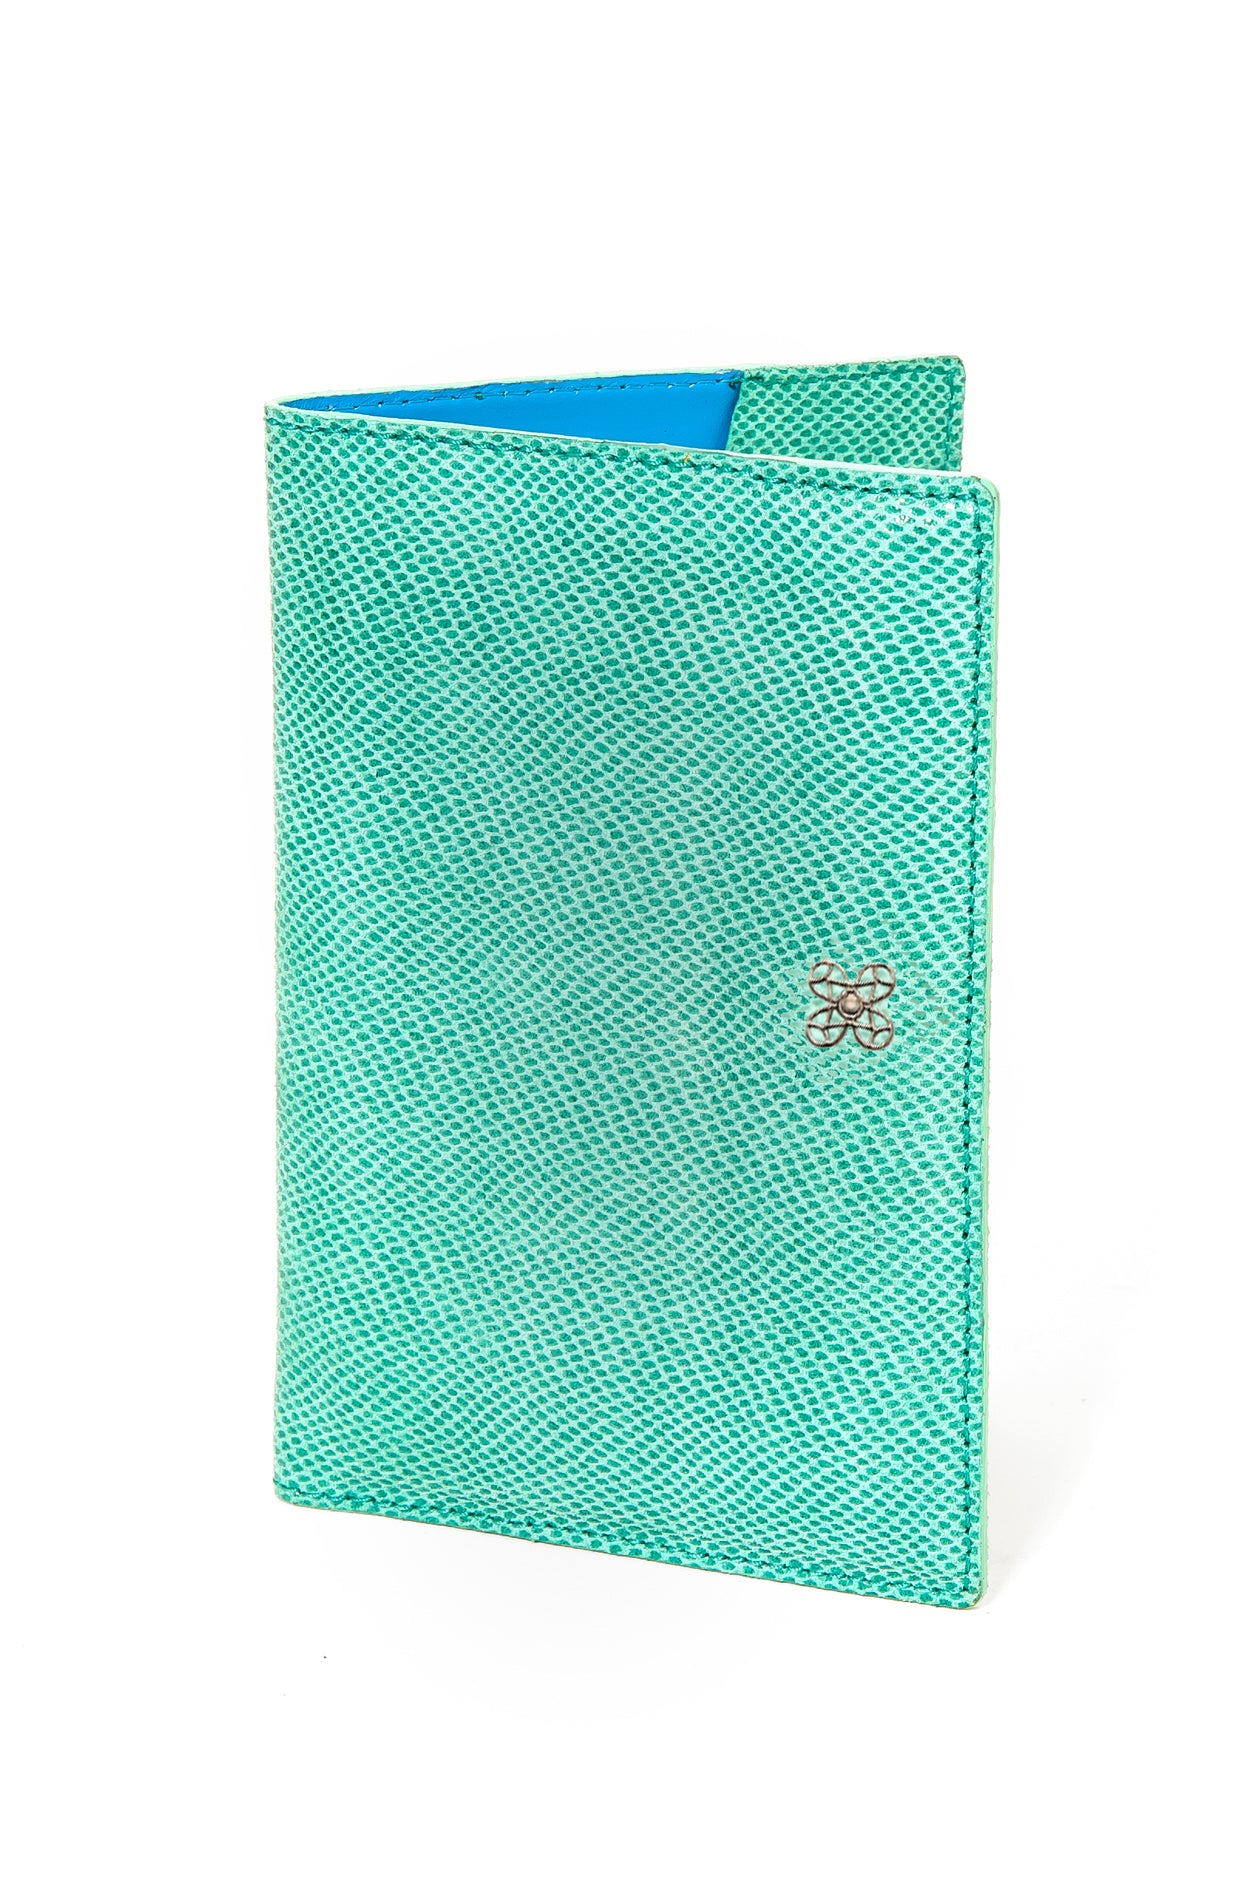 Mel Boteri | Jade Snake-Print Leather Passport Cover | Front